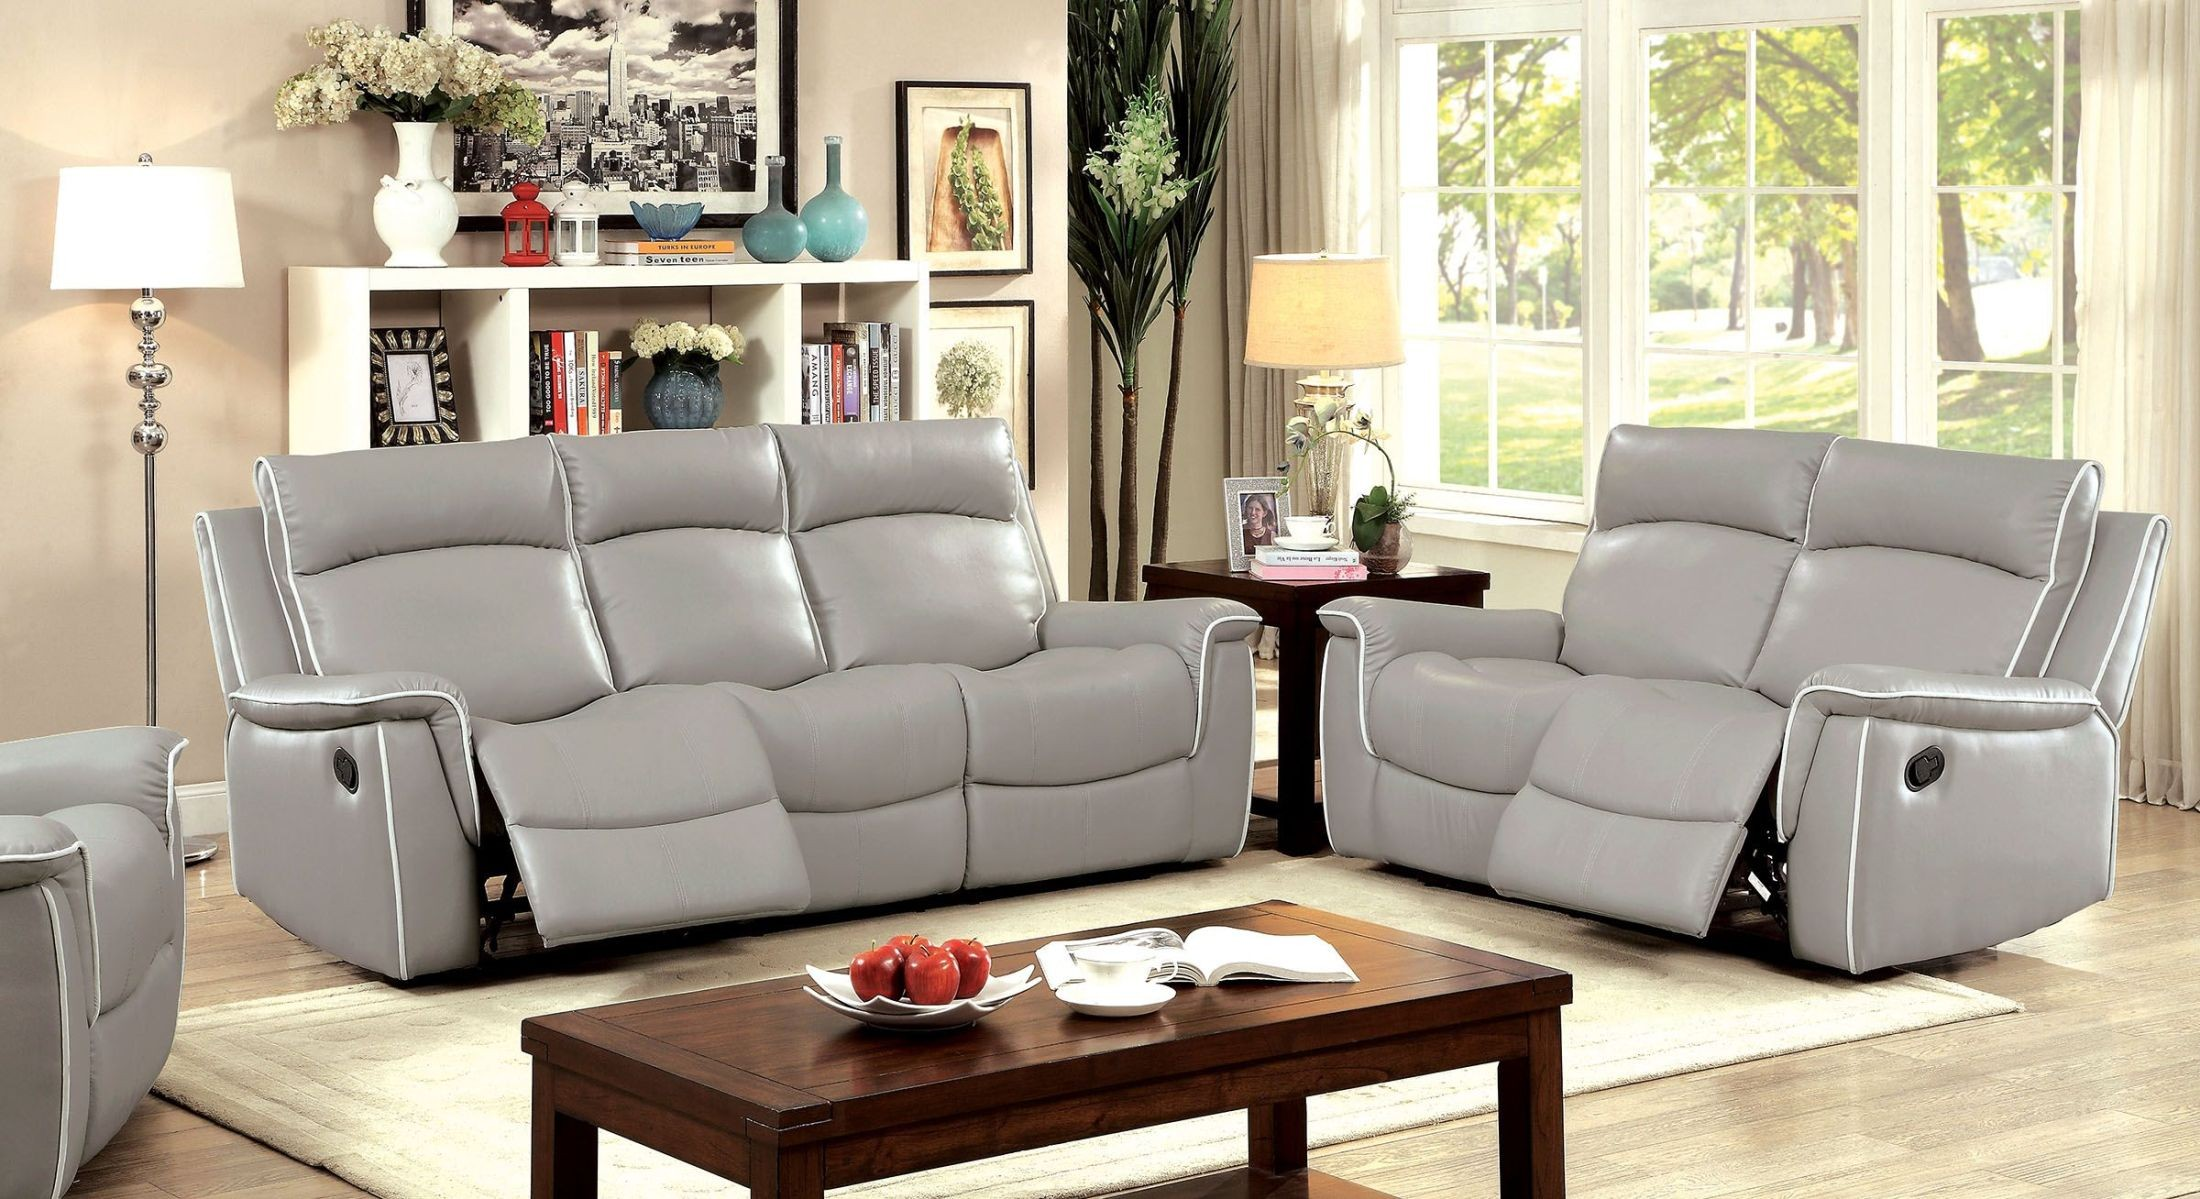 Salome Light Gray Recliner Living Room Set From Furniture Of America Coleman Furniture